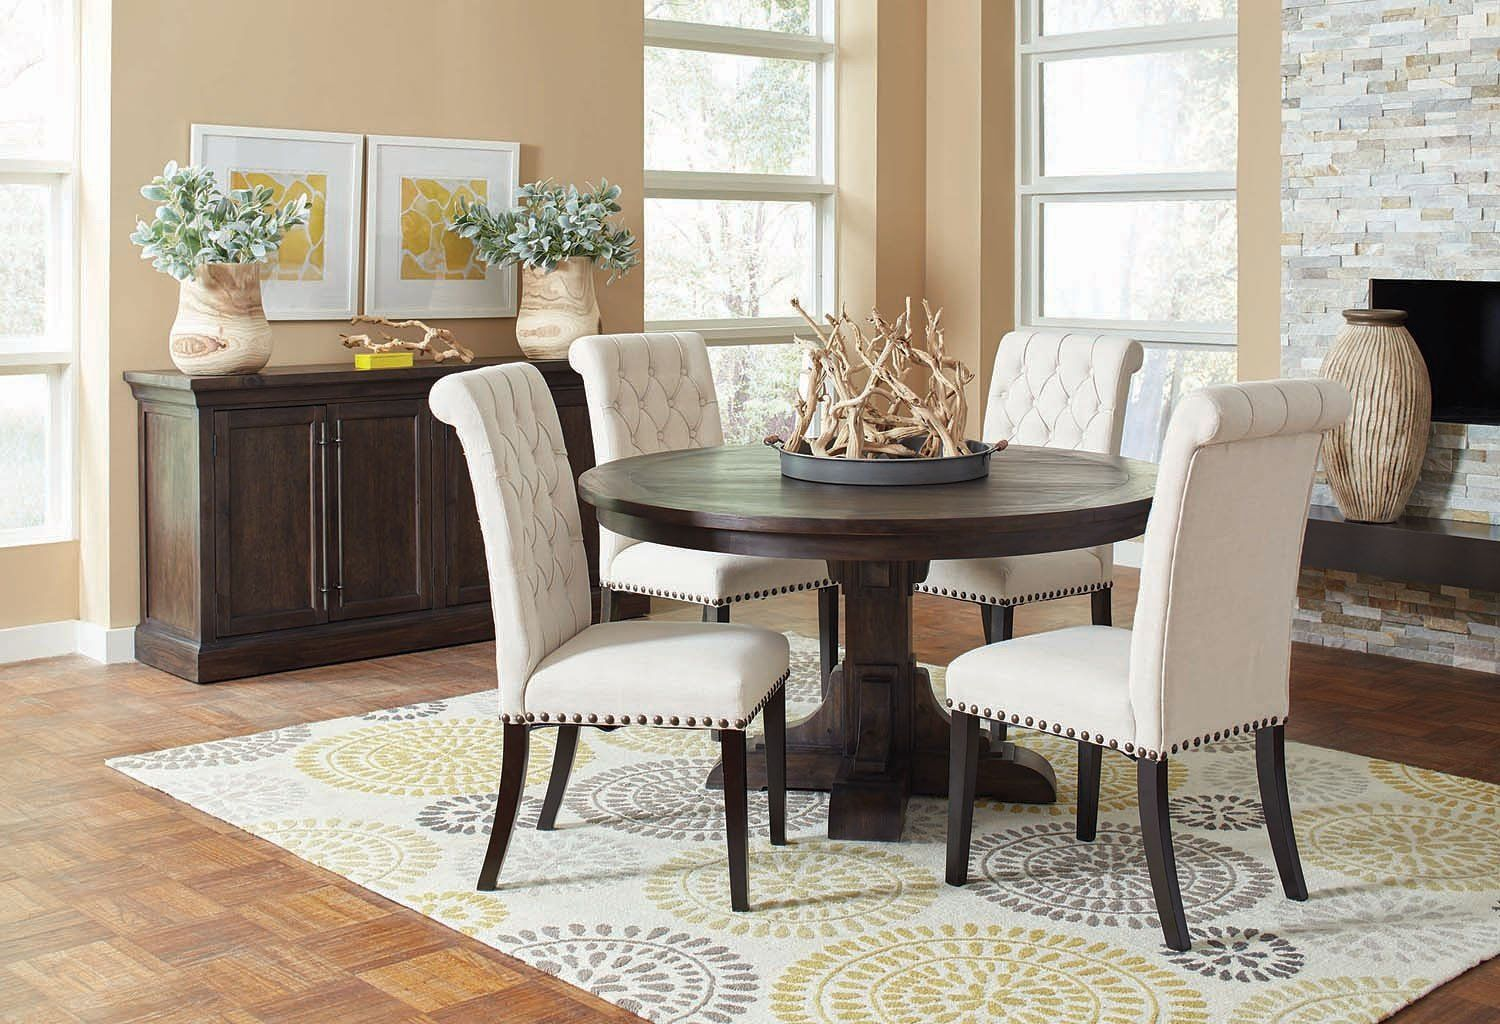 Weber Round Dining Room Set W Cream Chairs Round Dining Room Sets Round Dining Room Round Dining Table